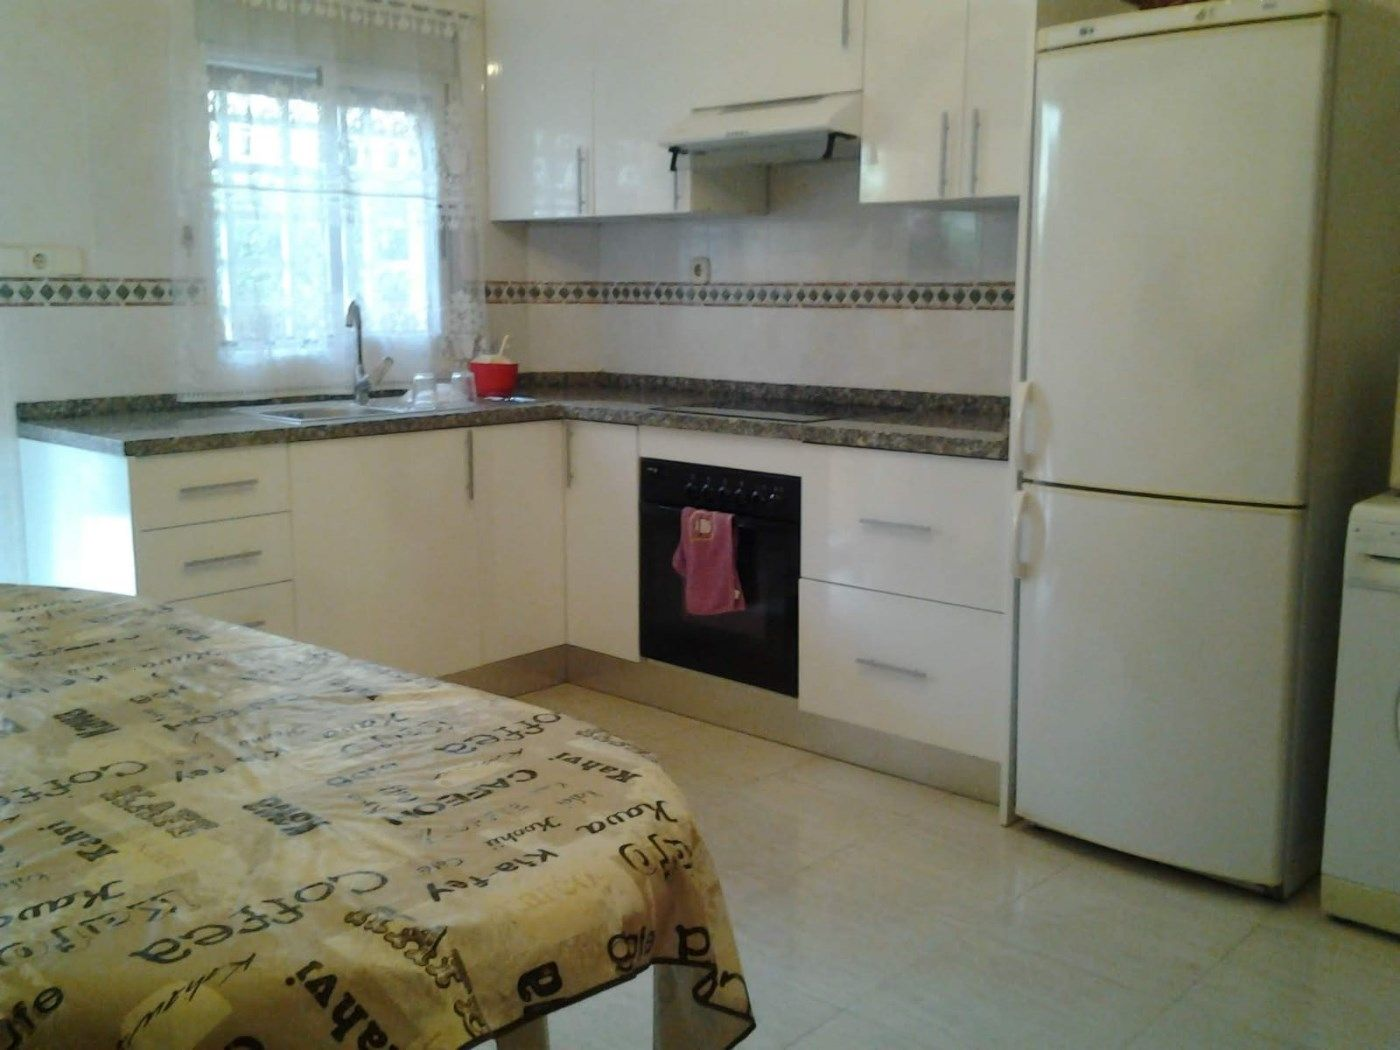 Location Appartement  Calle mallorca. Apartamento amueblado